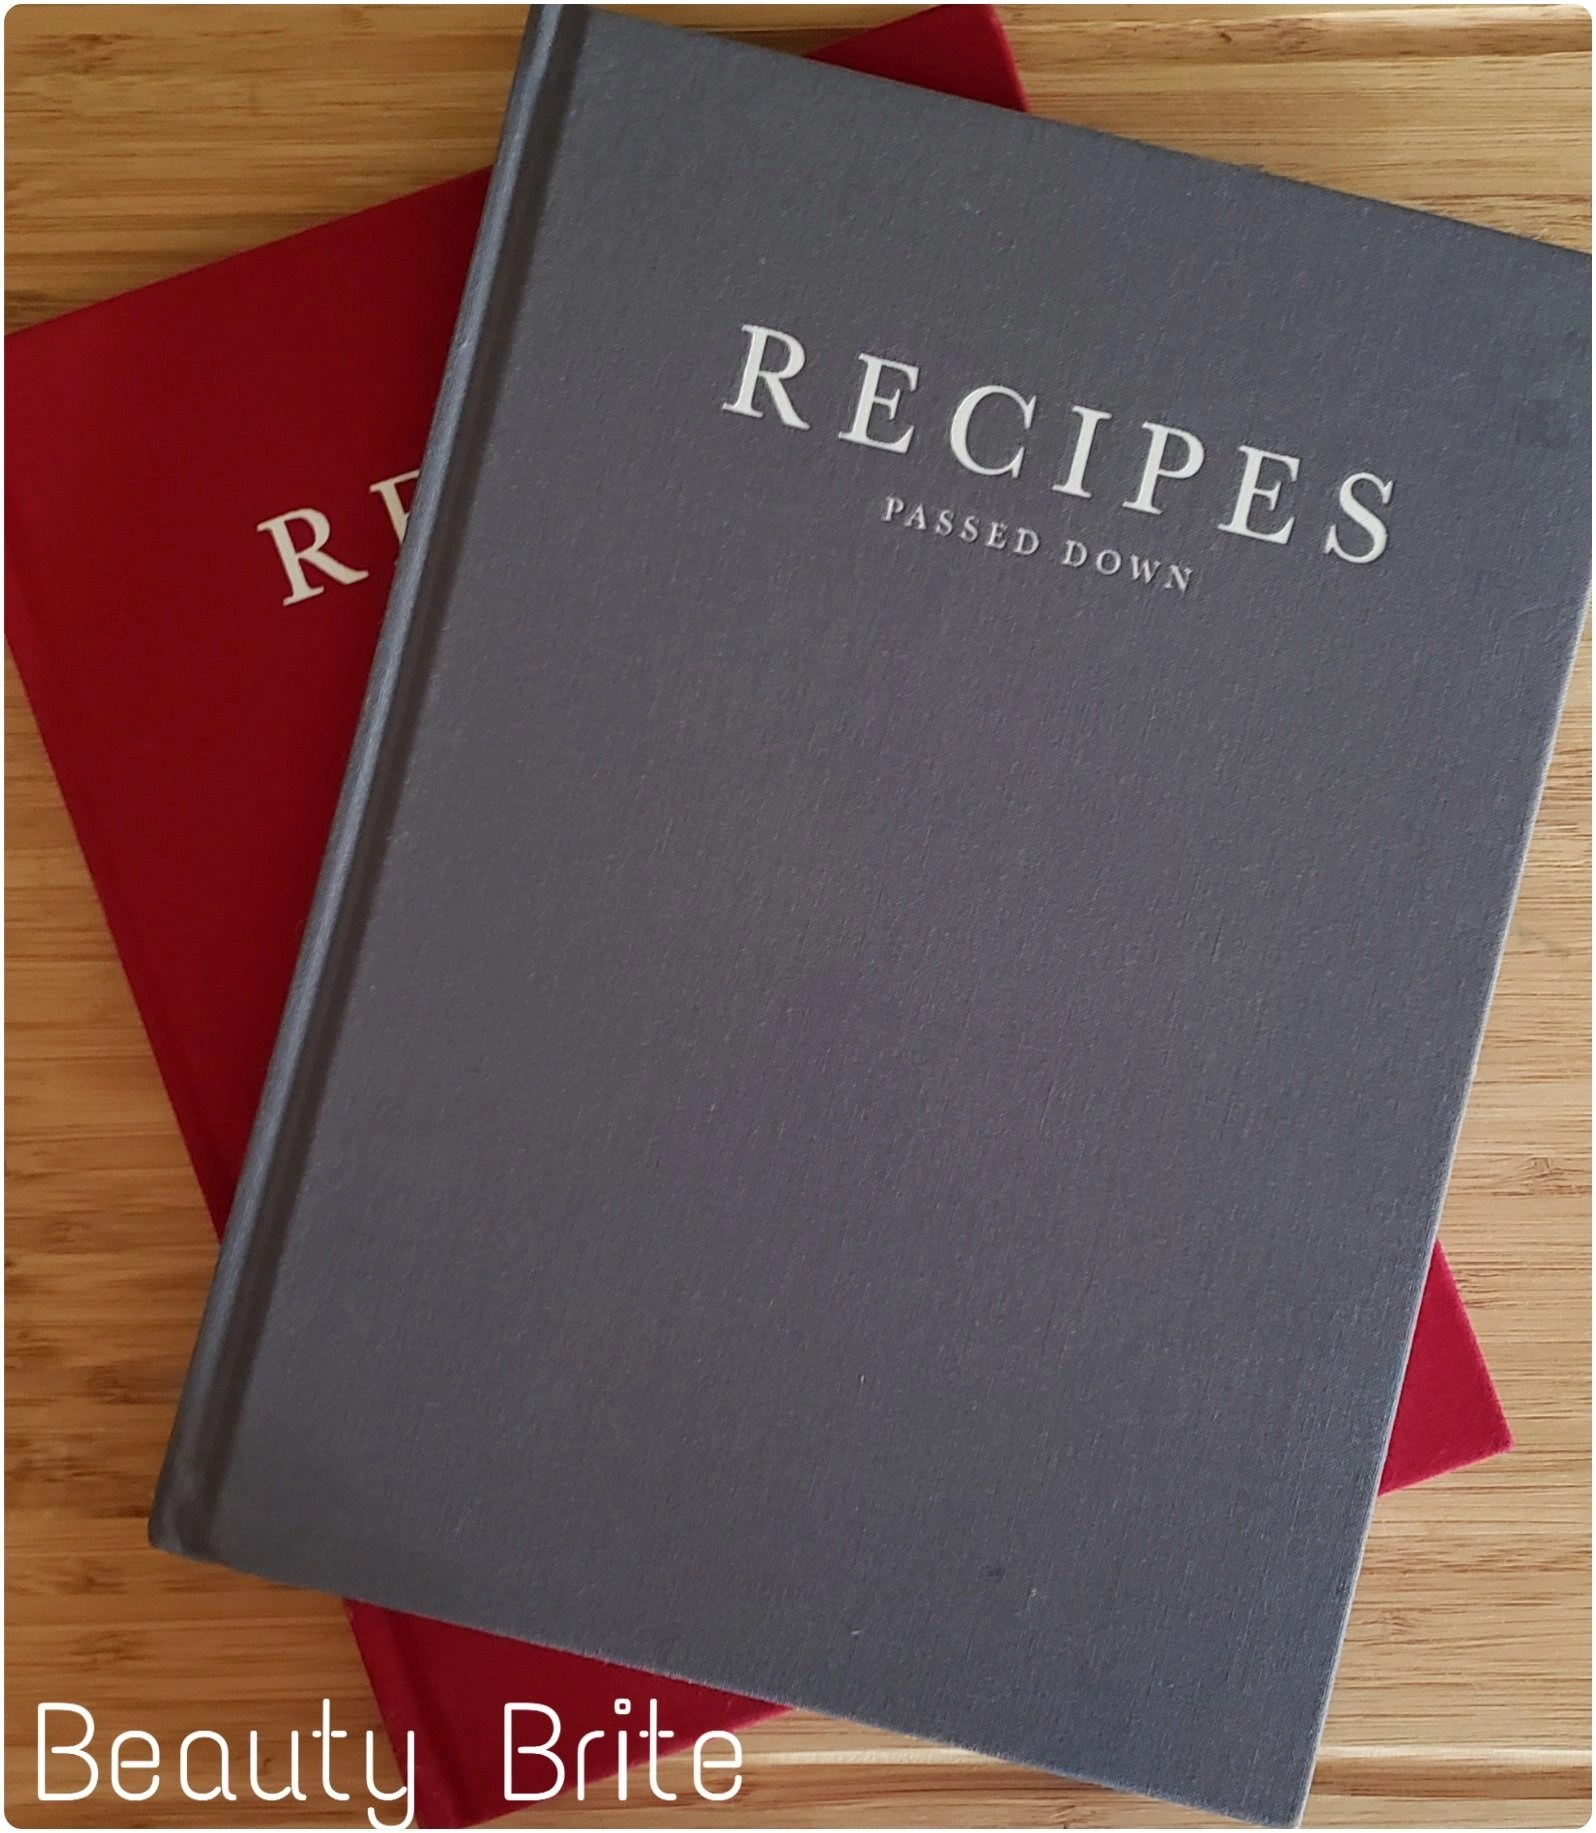 Write To Me Recipes Passed Down Both Cover colors